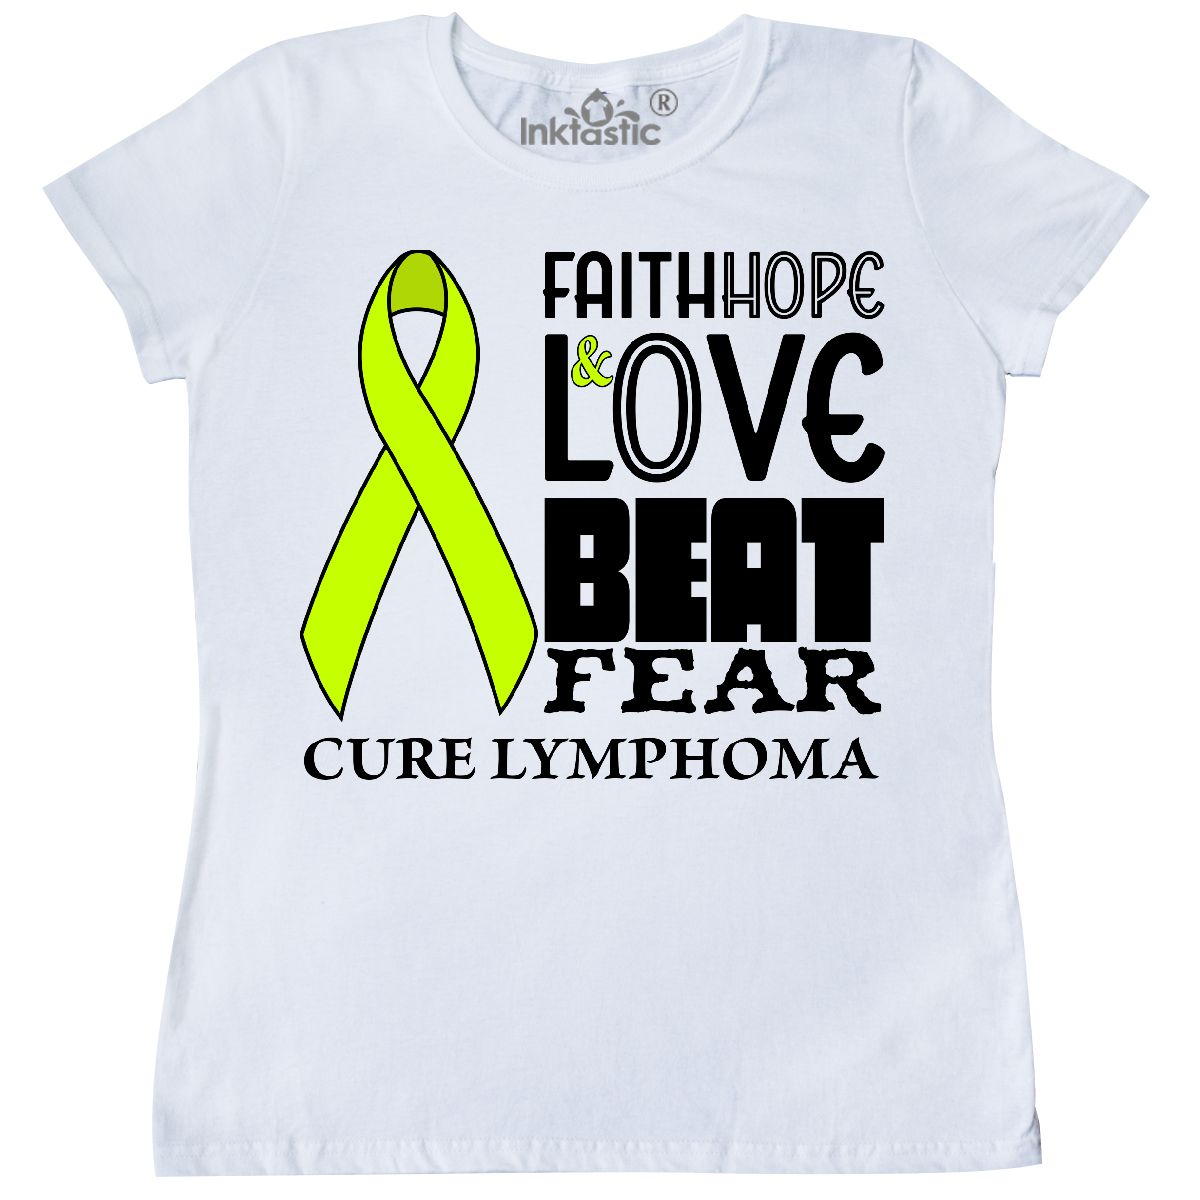 c4c9198d0 Image is loading Inktastic-Faith-Hope-And-Love-Beat-Fear-Cure-